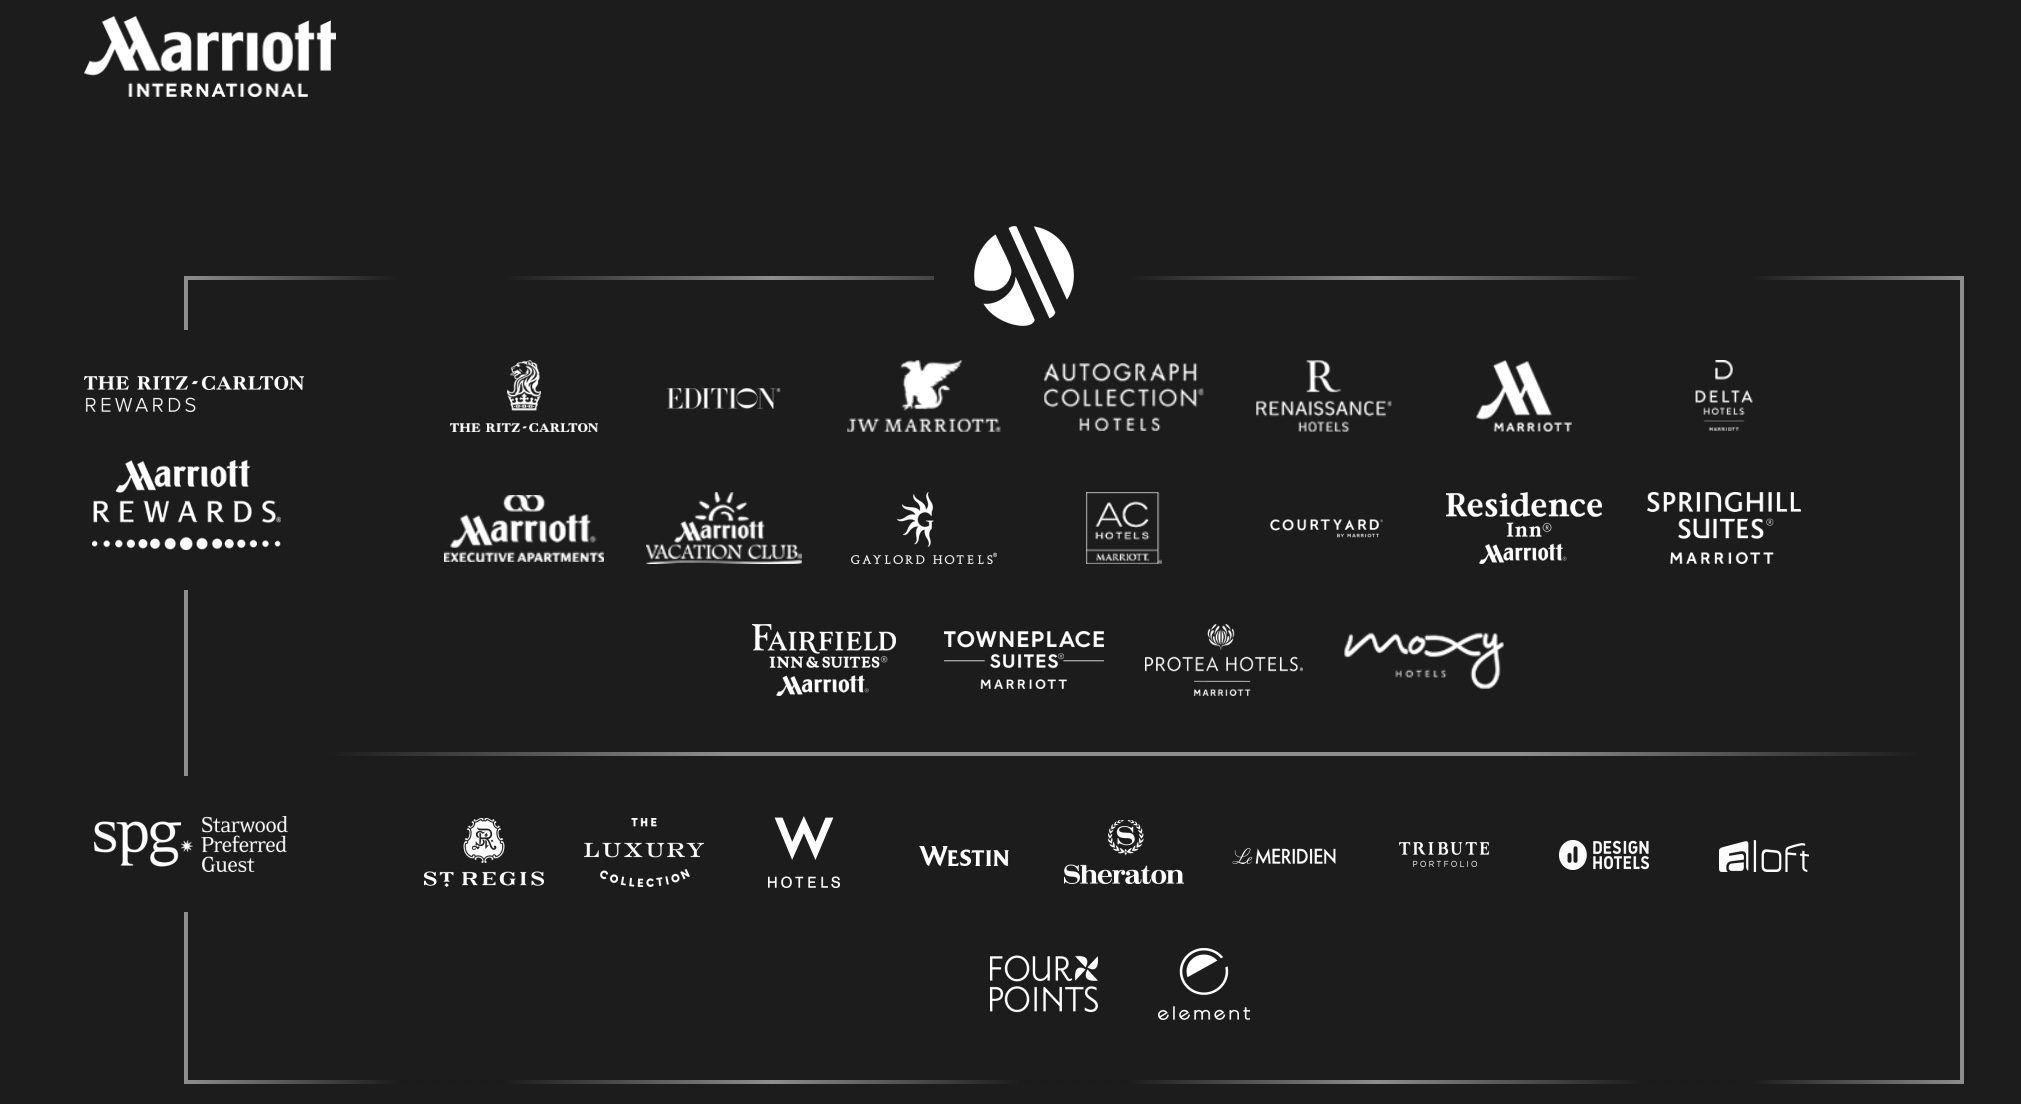 Marriot has 29 brands